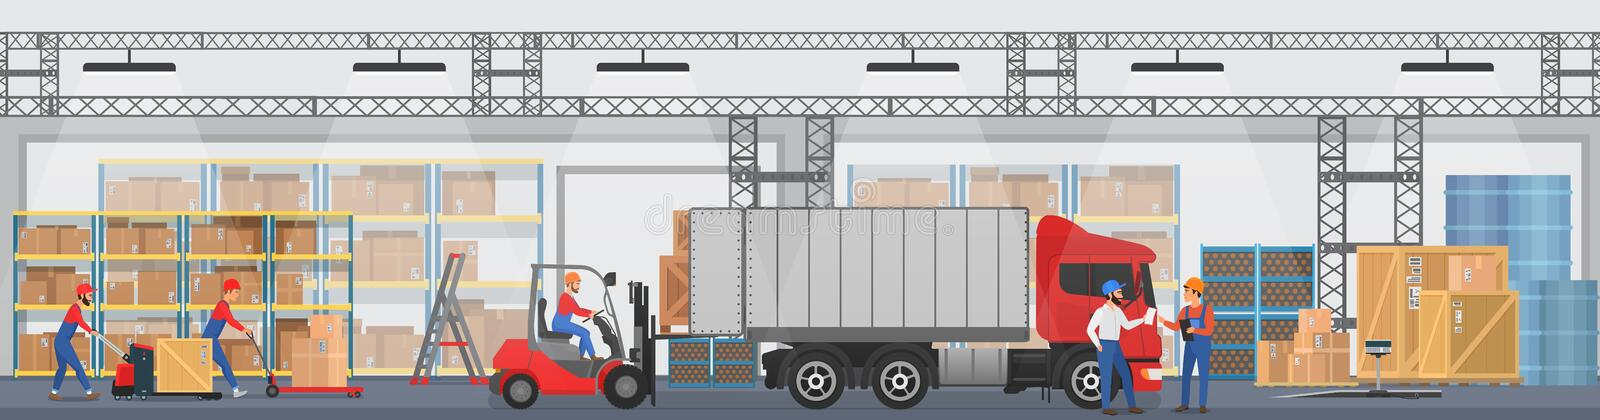 Vector Warehouse interior with workers arranging goods on the shelves and dip boxes into a truck. Warehouse modern. Interior wirh cargo truck stock illustration